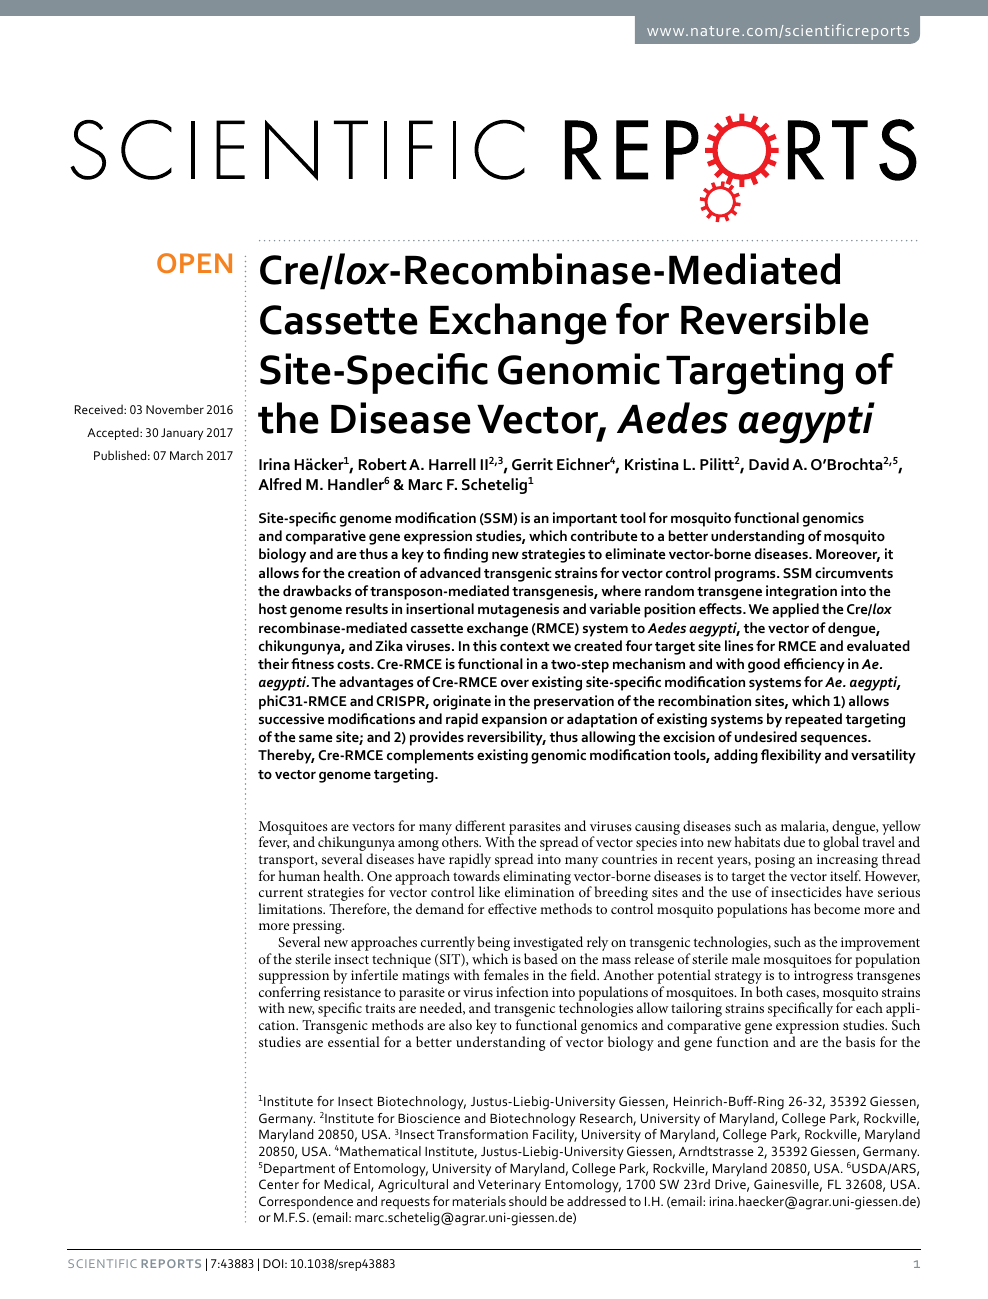 Cre/lox-Recombinase-Mediated Cassette Exchange for Reversible Site